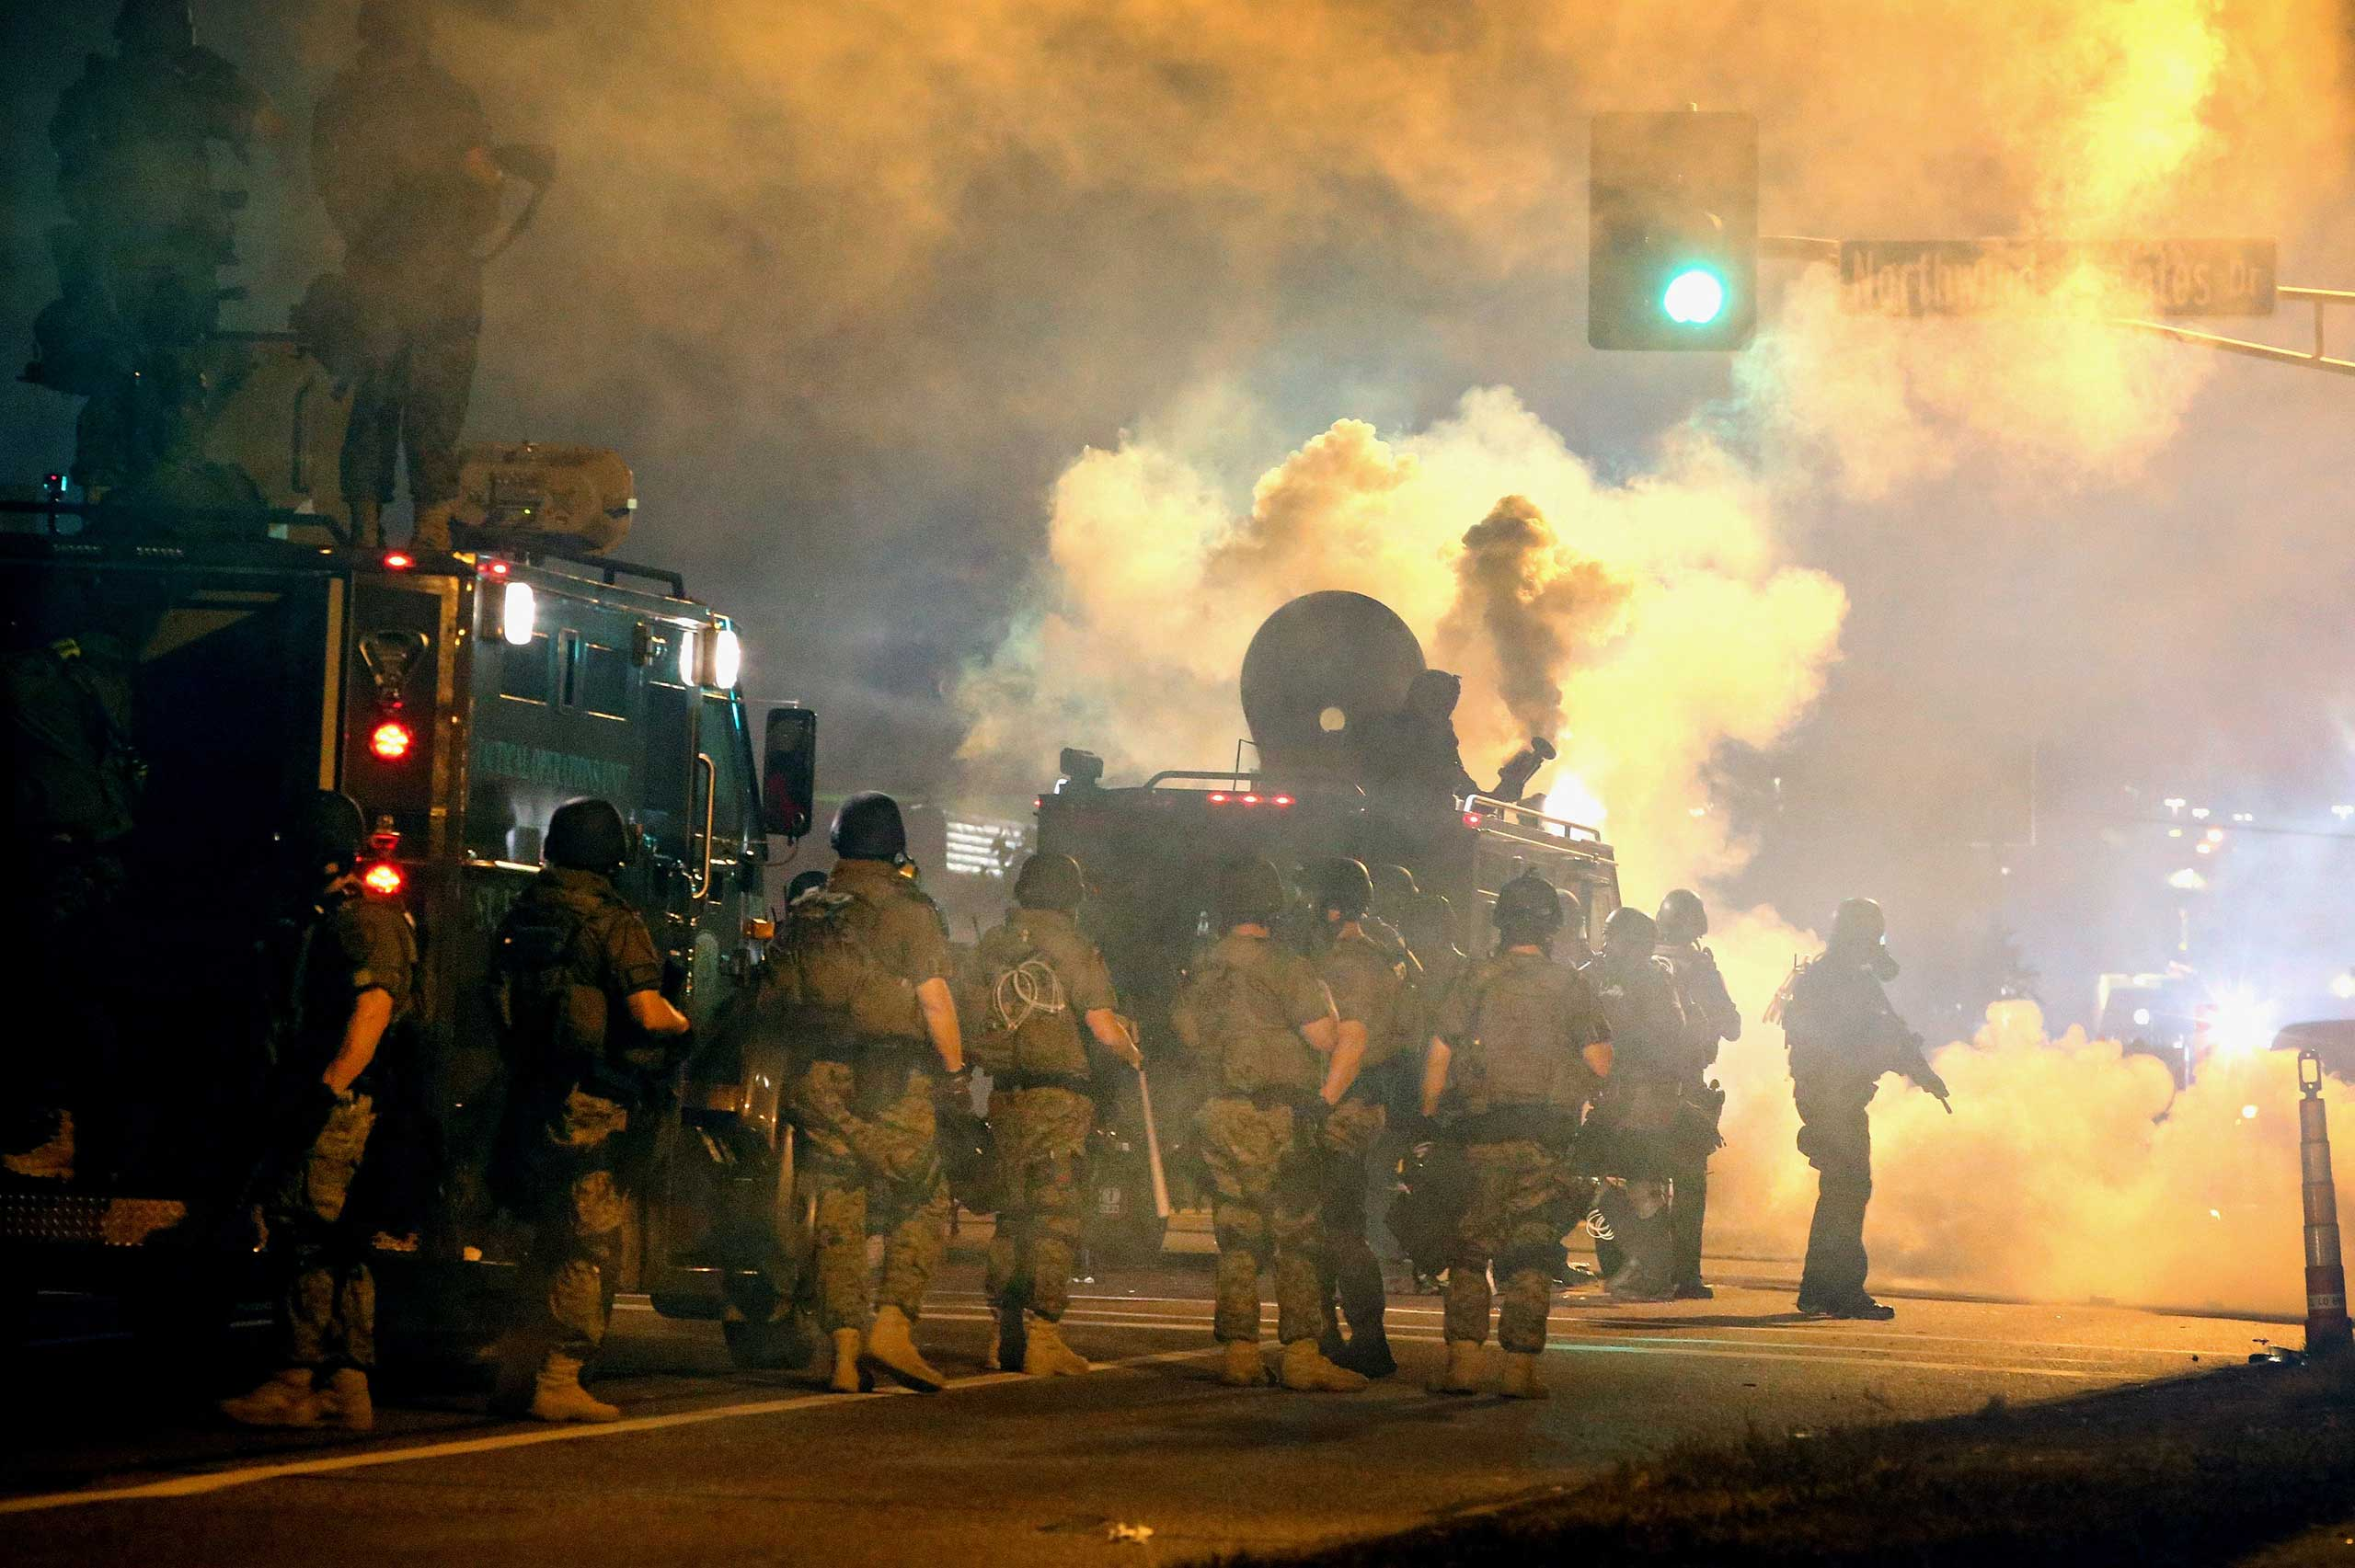 Police and Missouri National Guard attempt to control demonstrators protesting the killing of teenager Michael Brown on Aug. 18, 2014 in Ferguson, Mo.